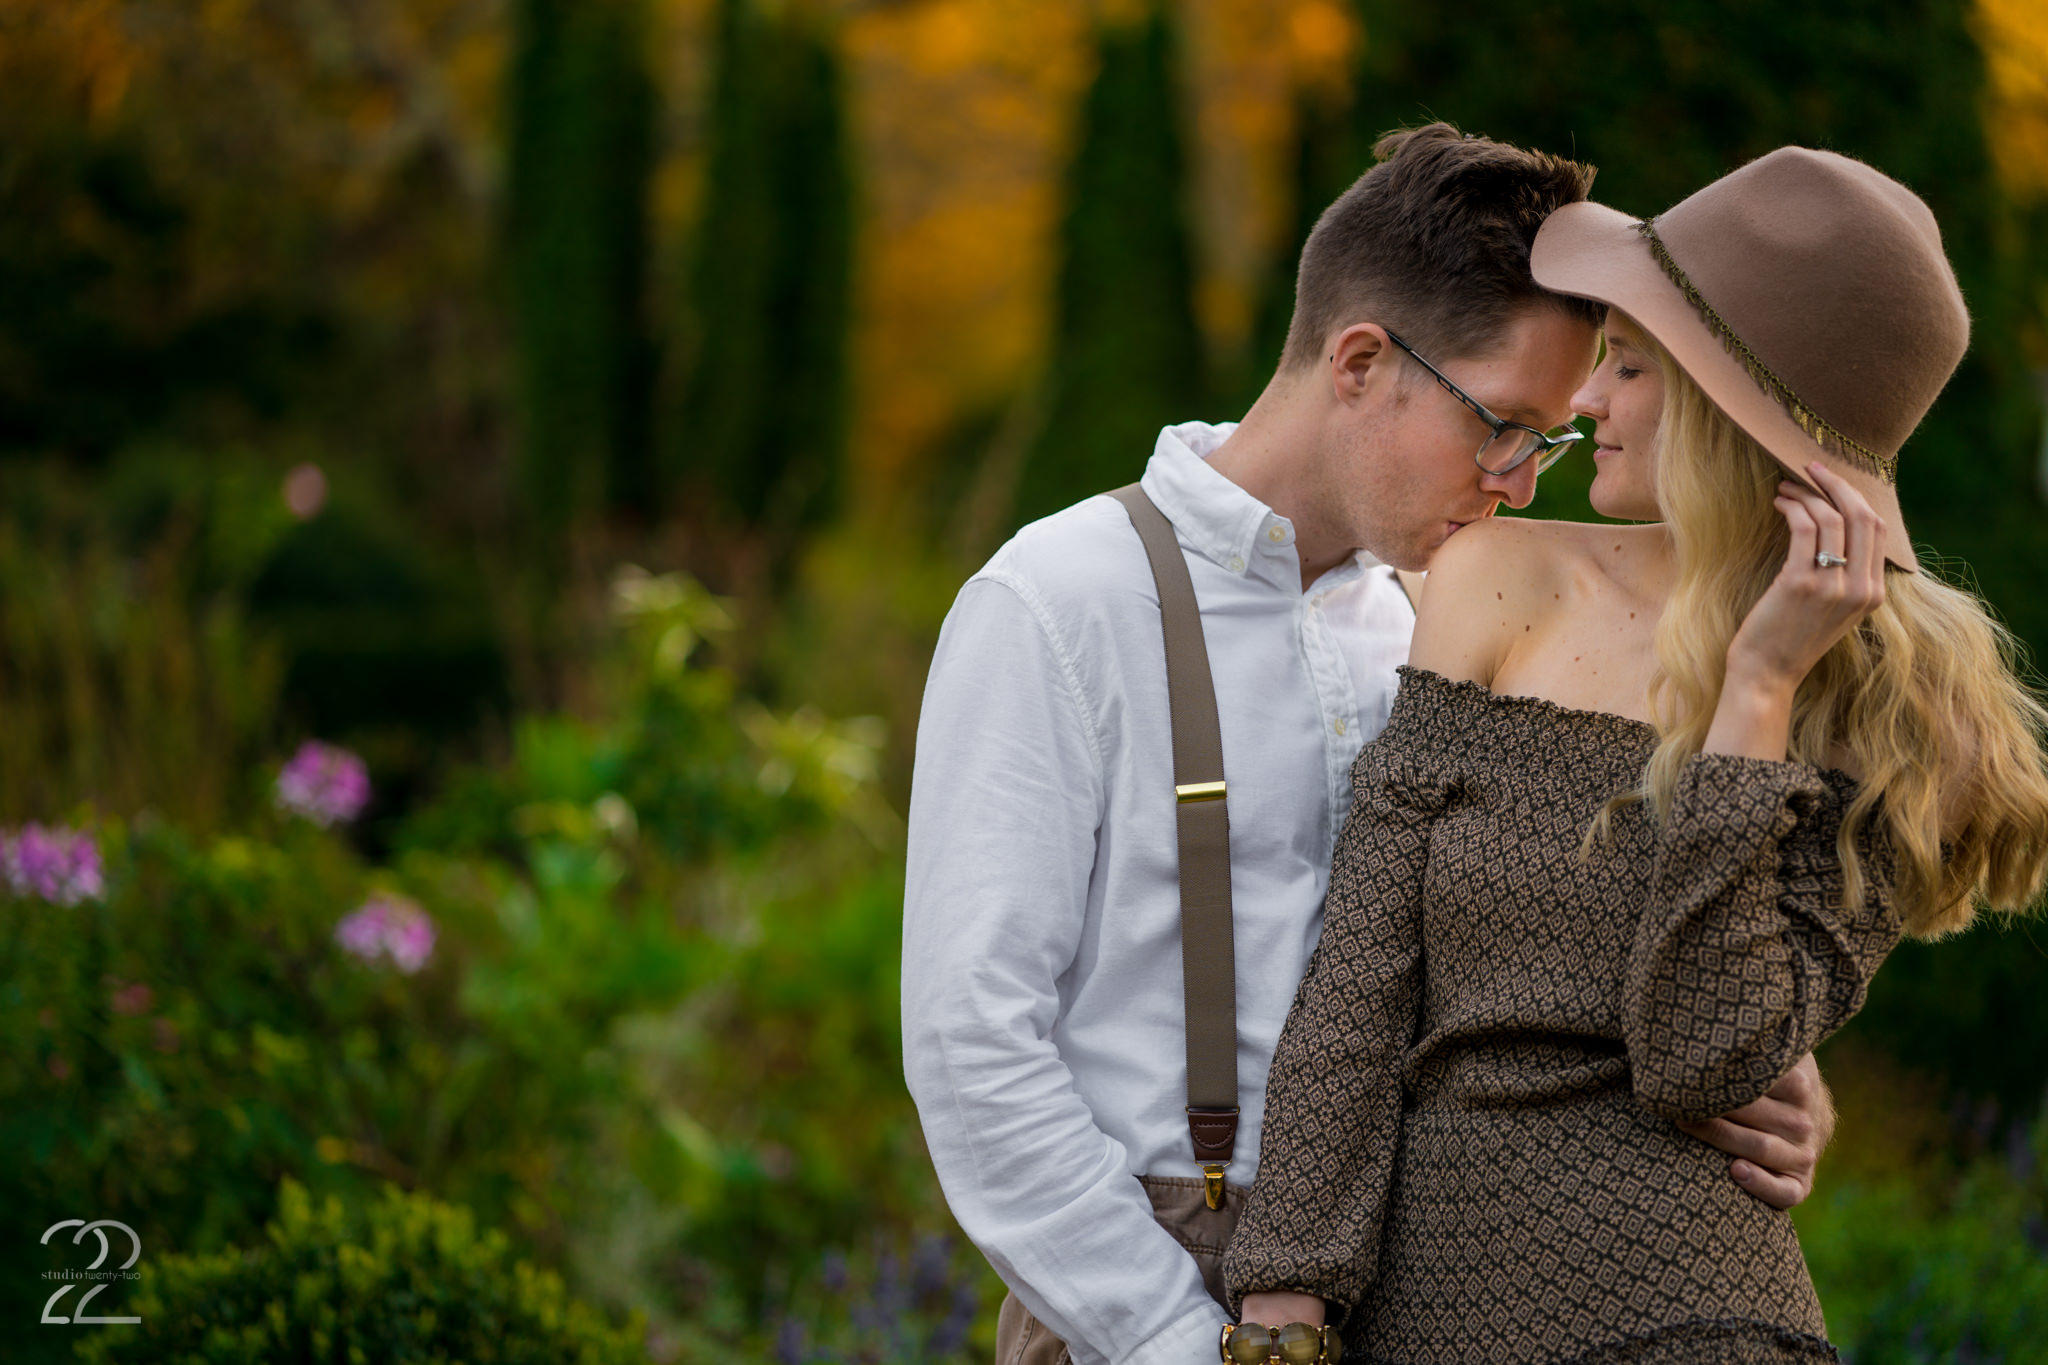 Man kisses woman's shoulder as he hugs her in a garden at Wegerzyn Garden Metropark by Dayton Wedding Photographer Studio 22 Photography